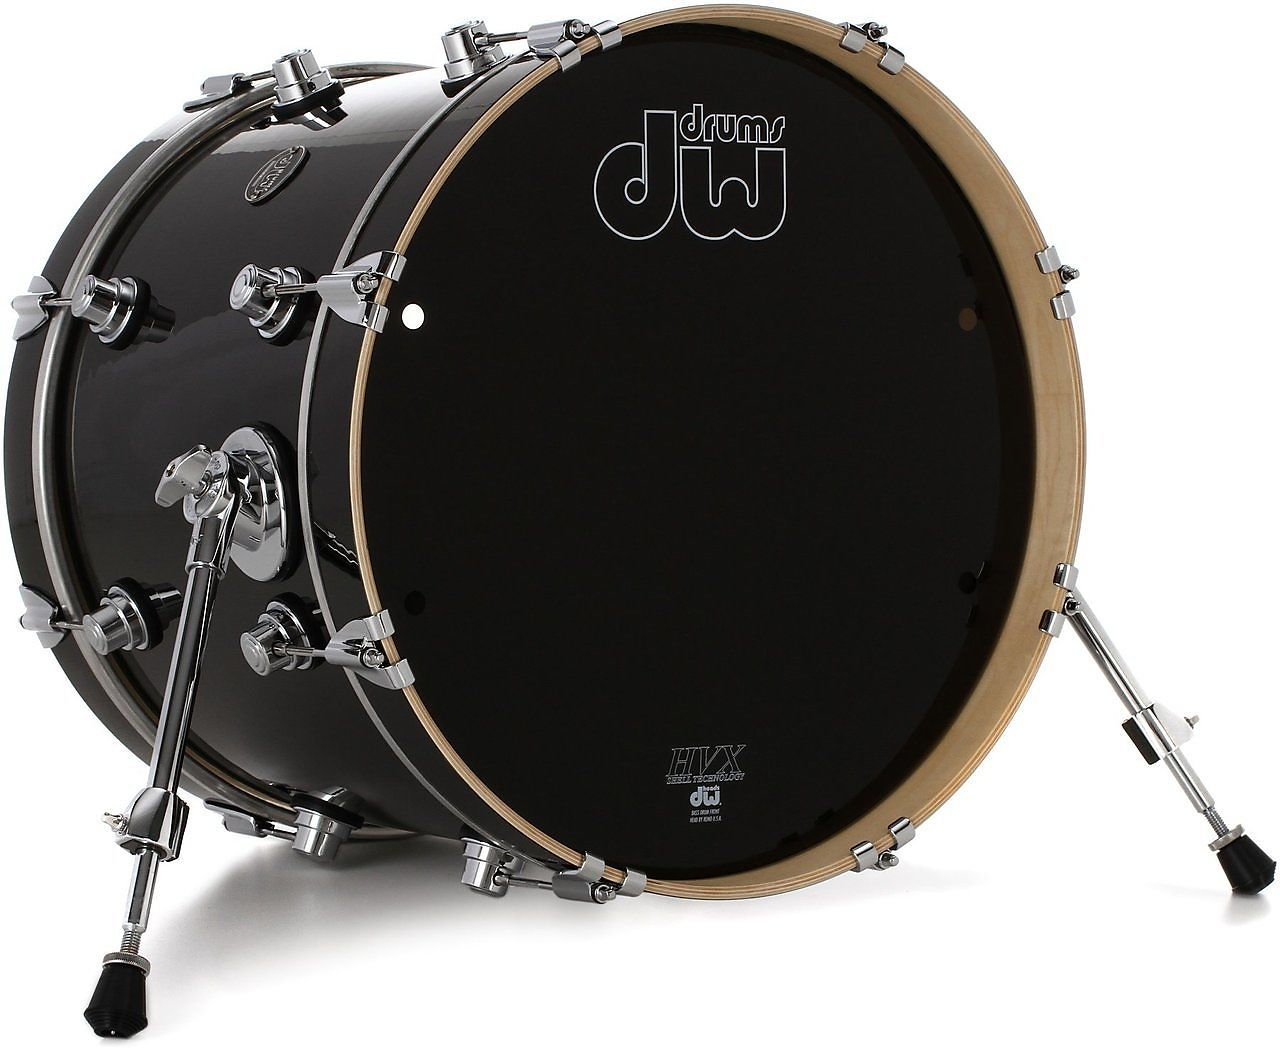 Dw performance series 14x18 bass drum reverb for Sweetwater affiliate program